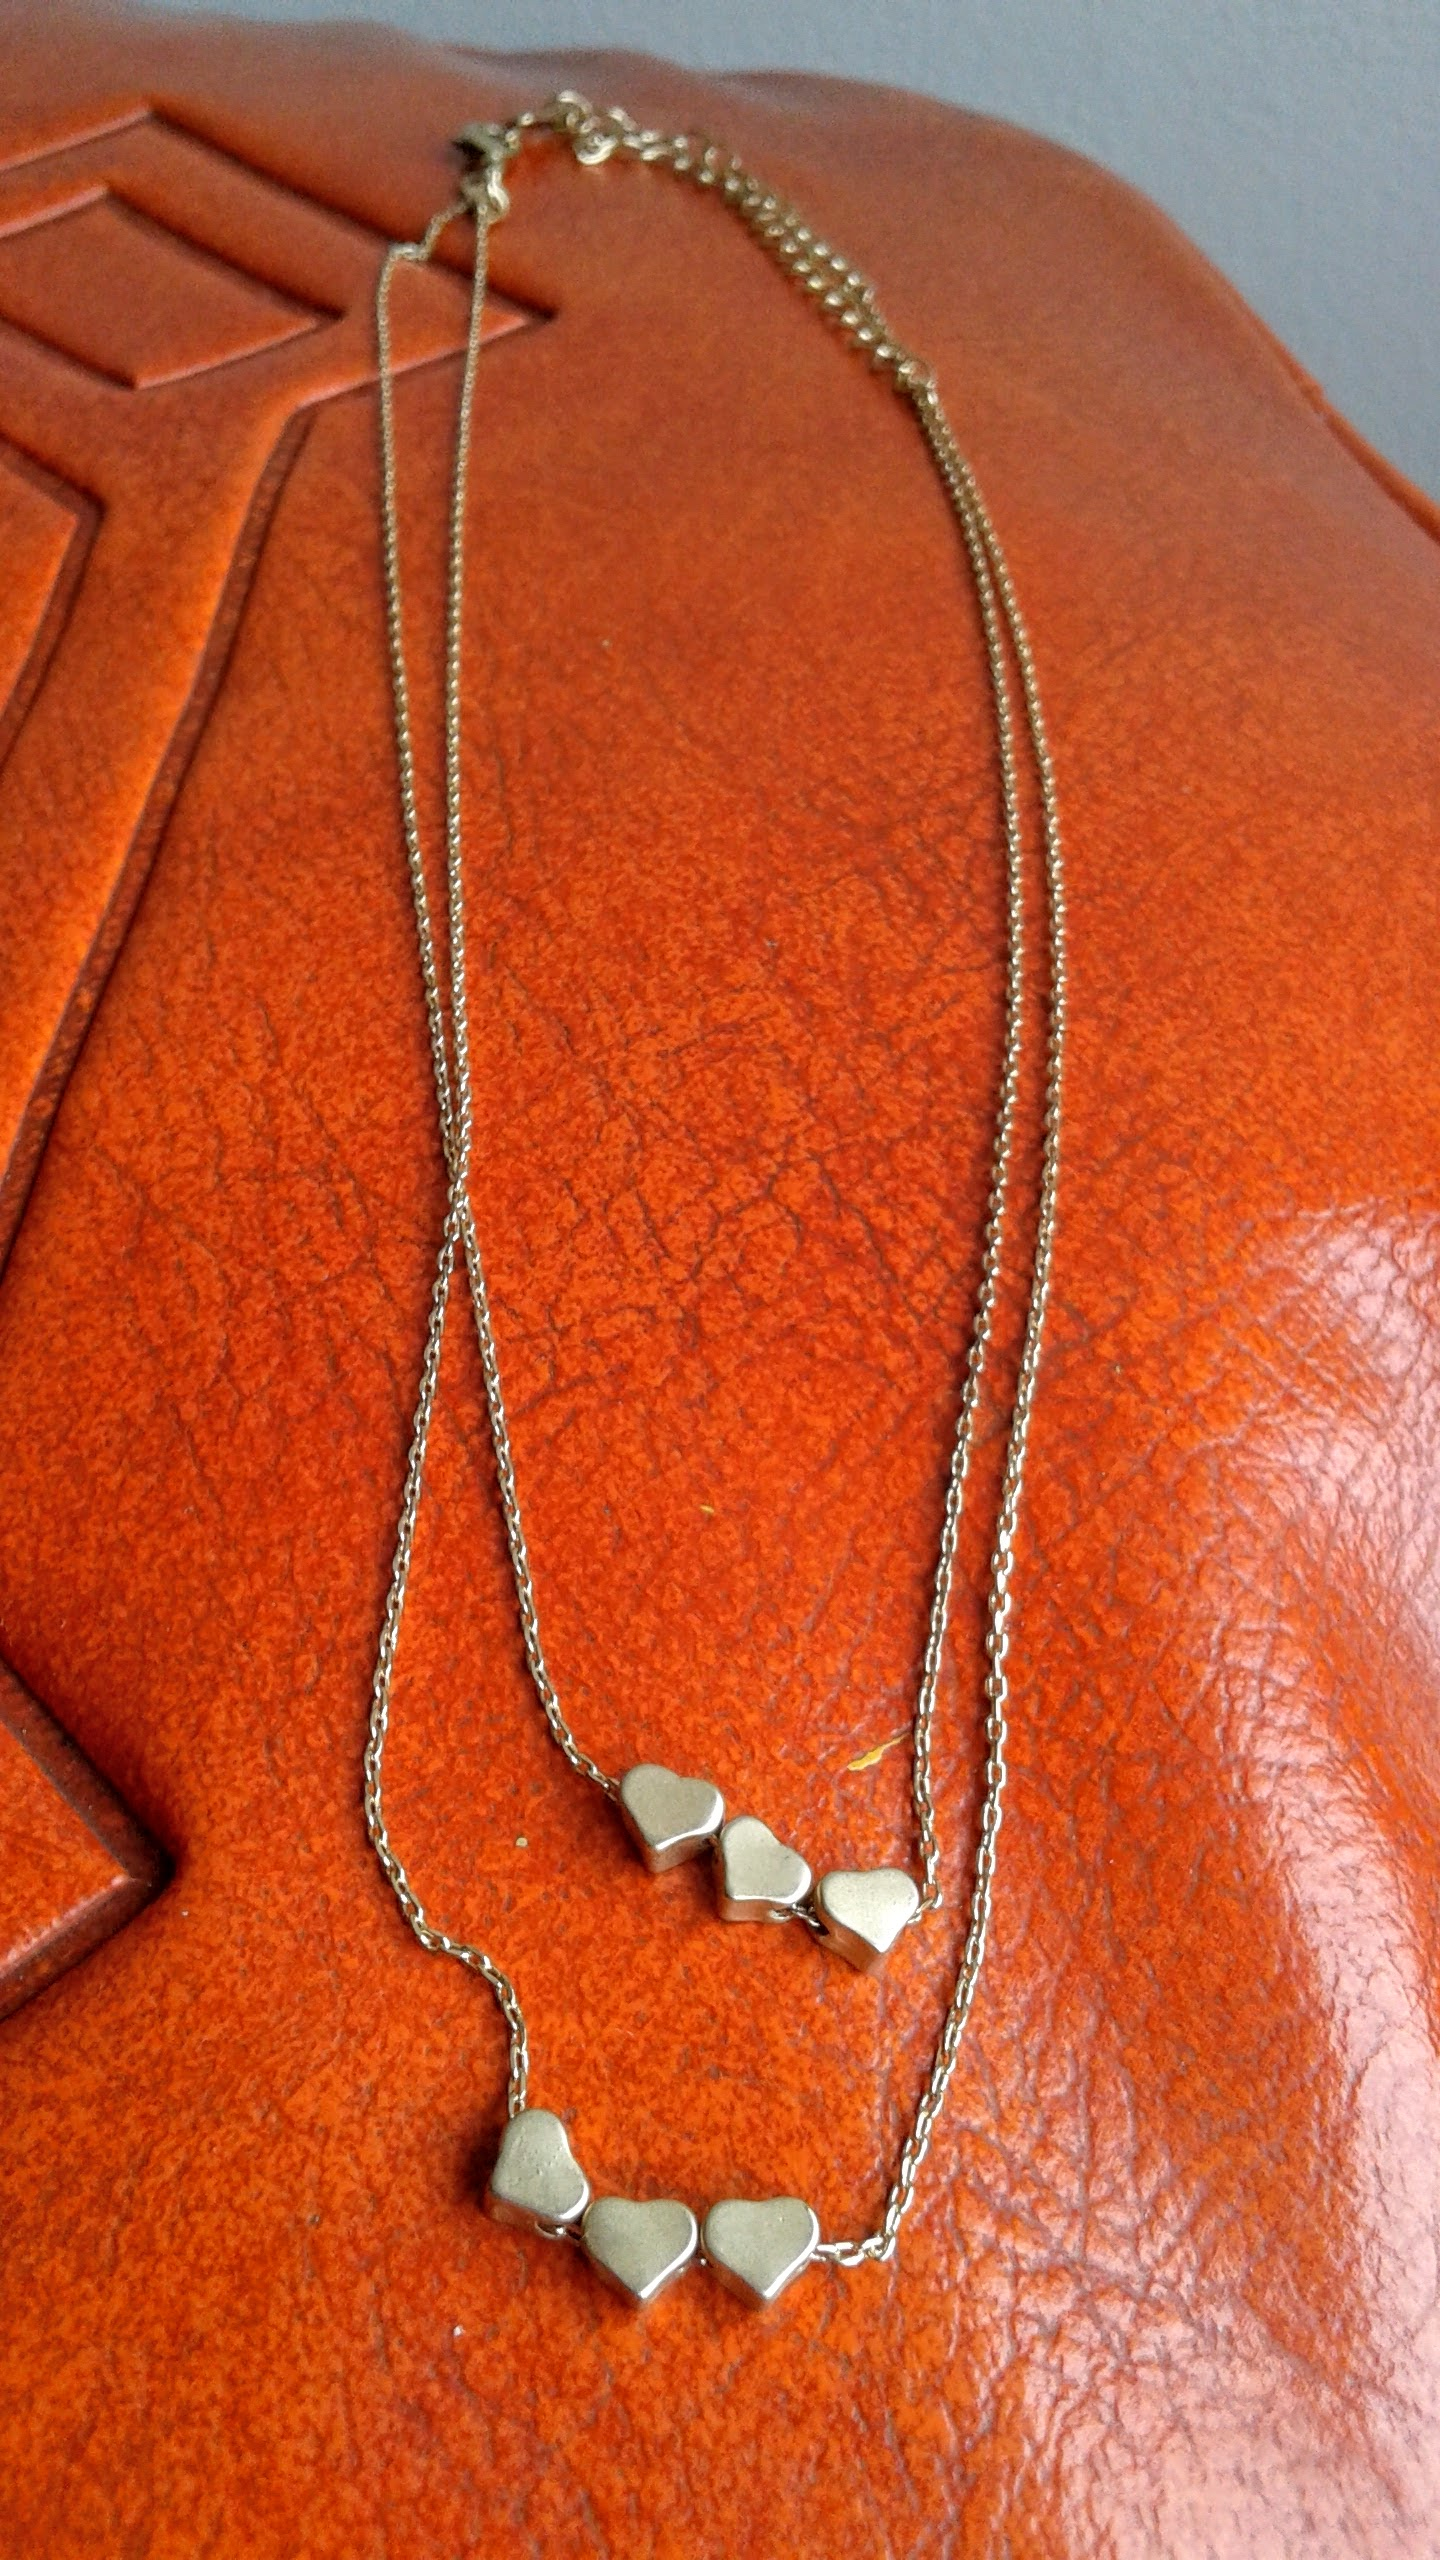 Necklace, $16